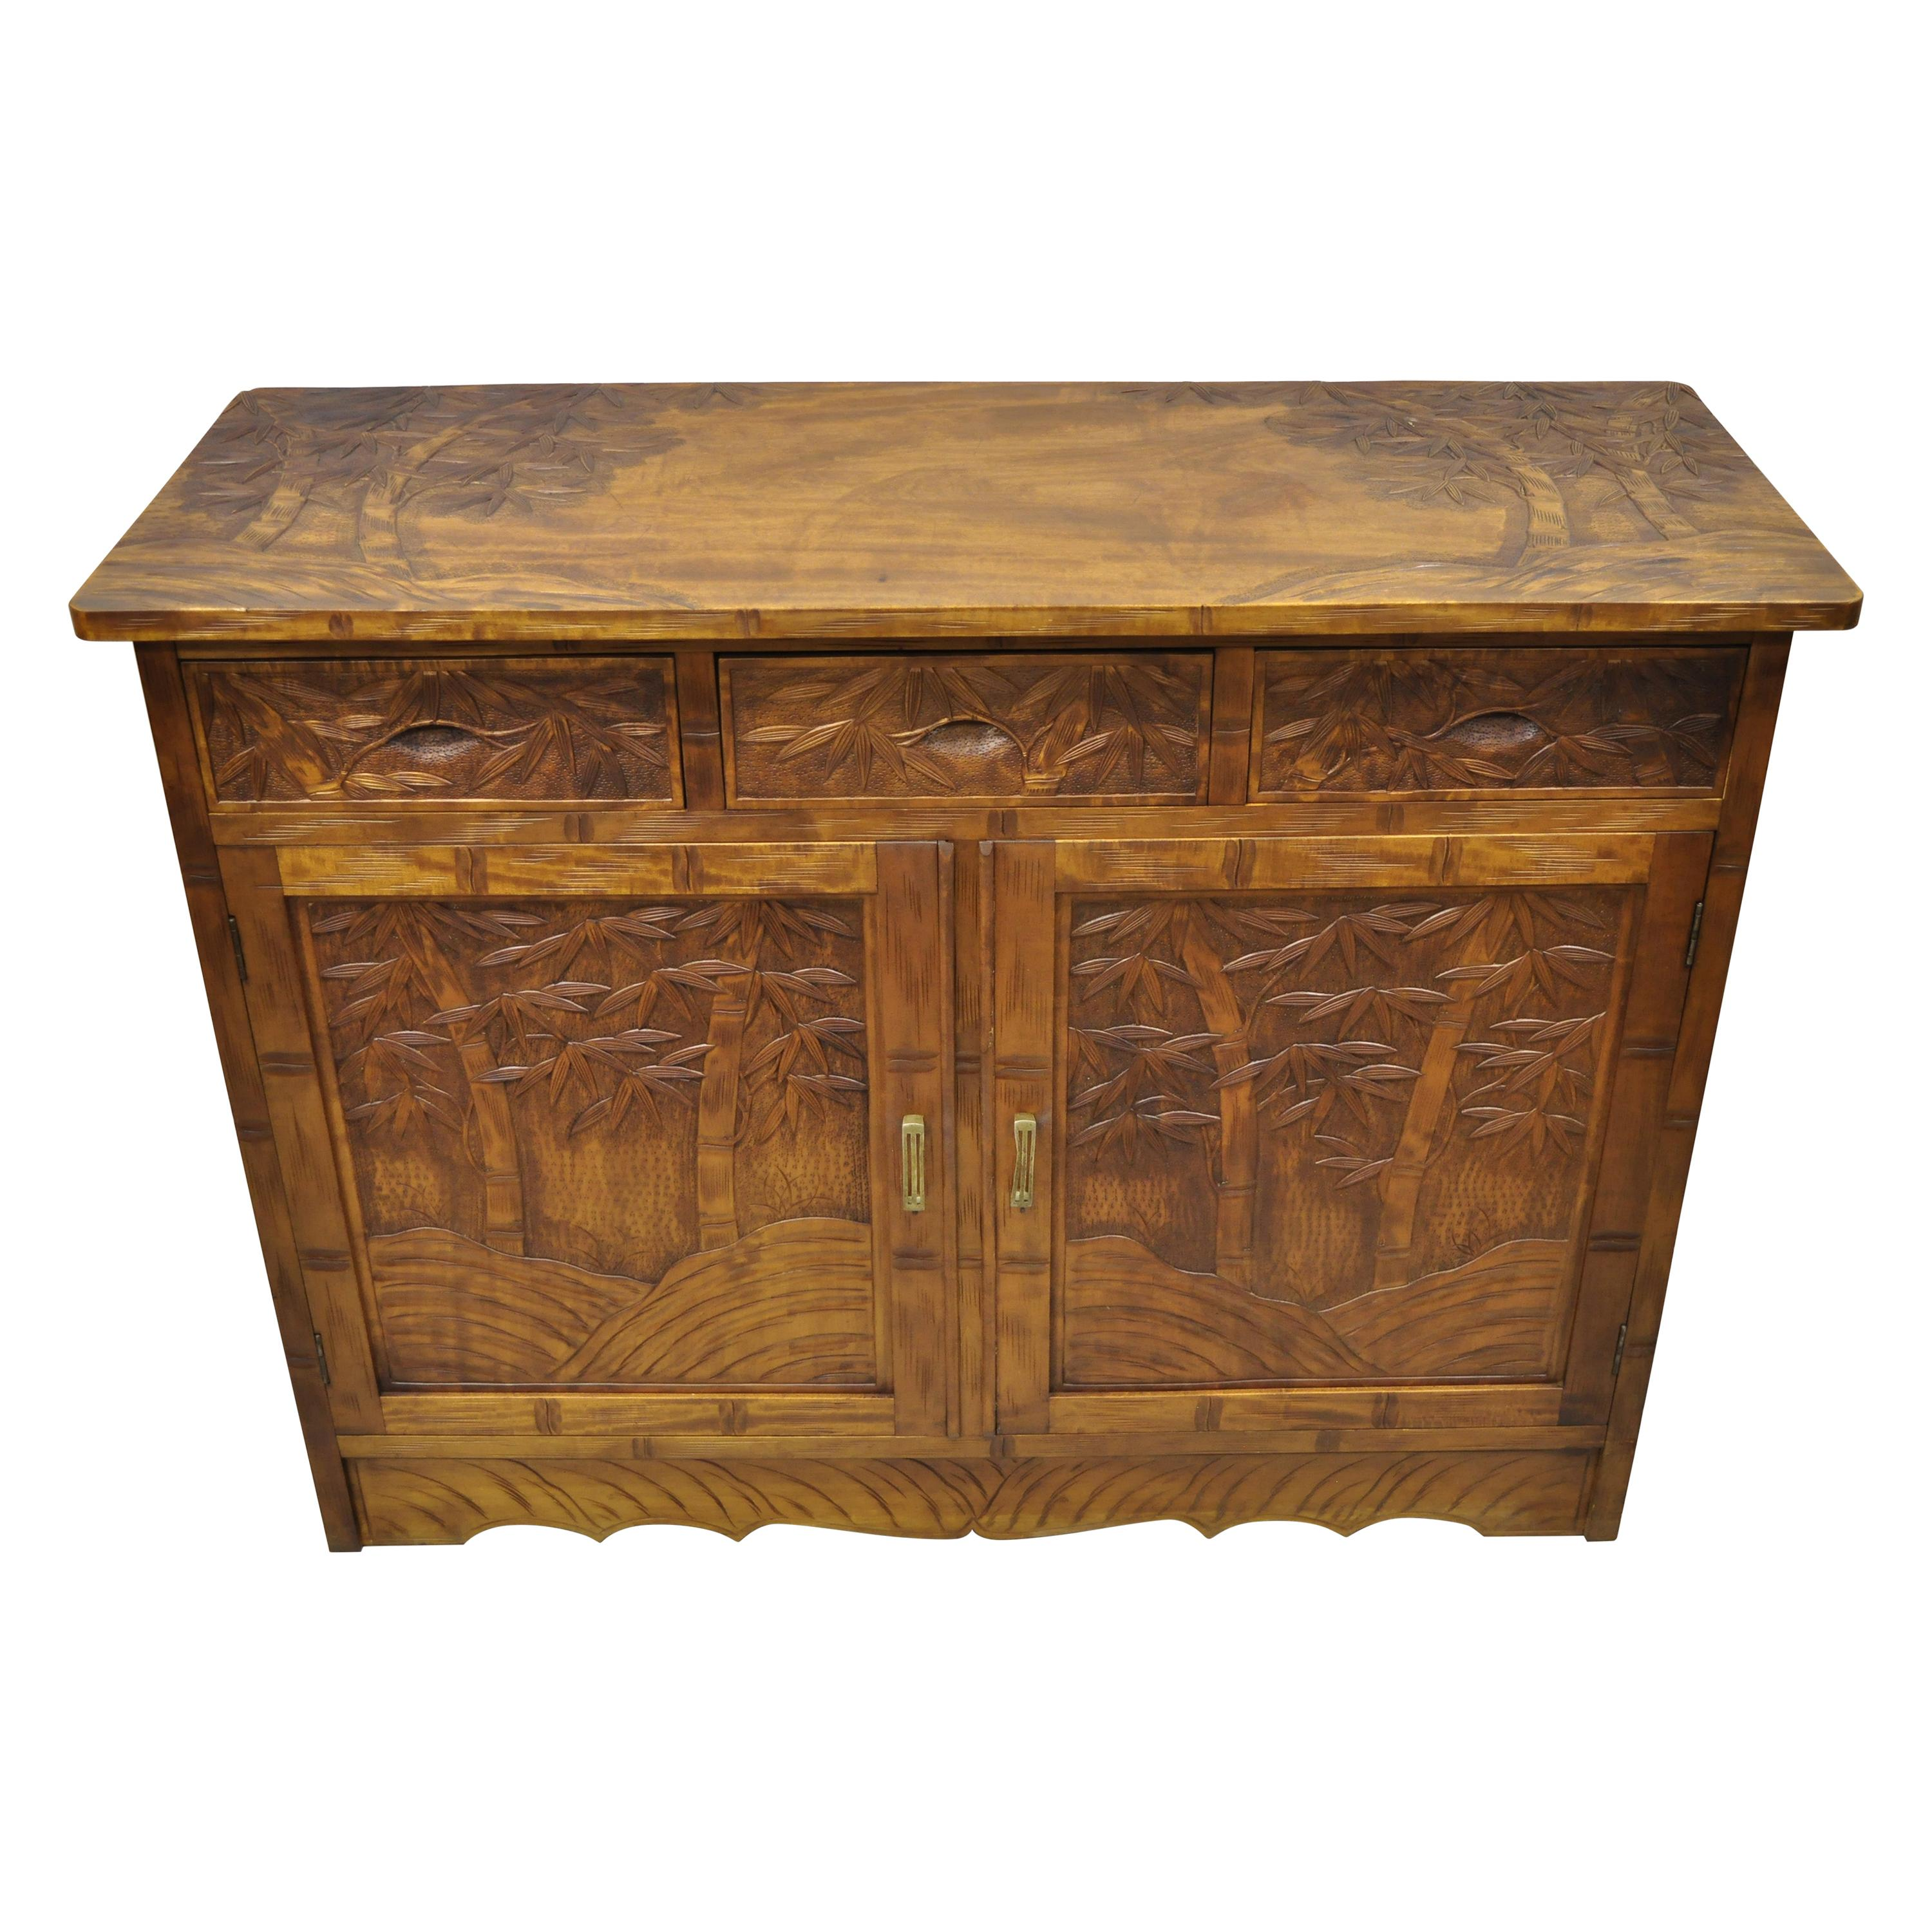 Vintage Chinese Teak Wood Carved Bamboo Tree Sideboard Buffet Cabinet